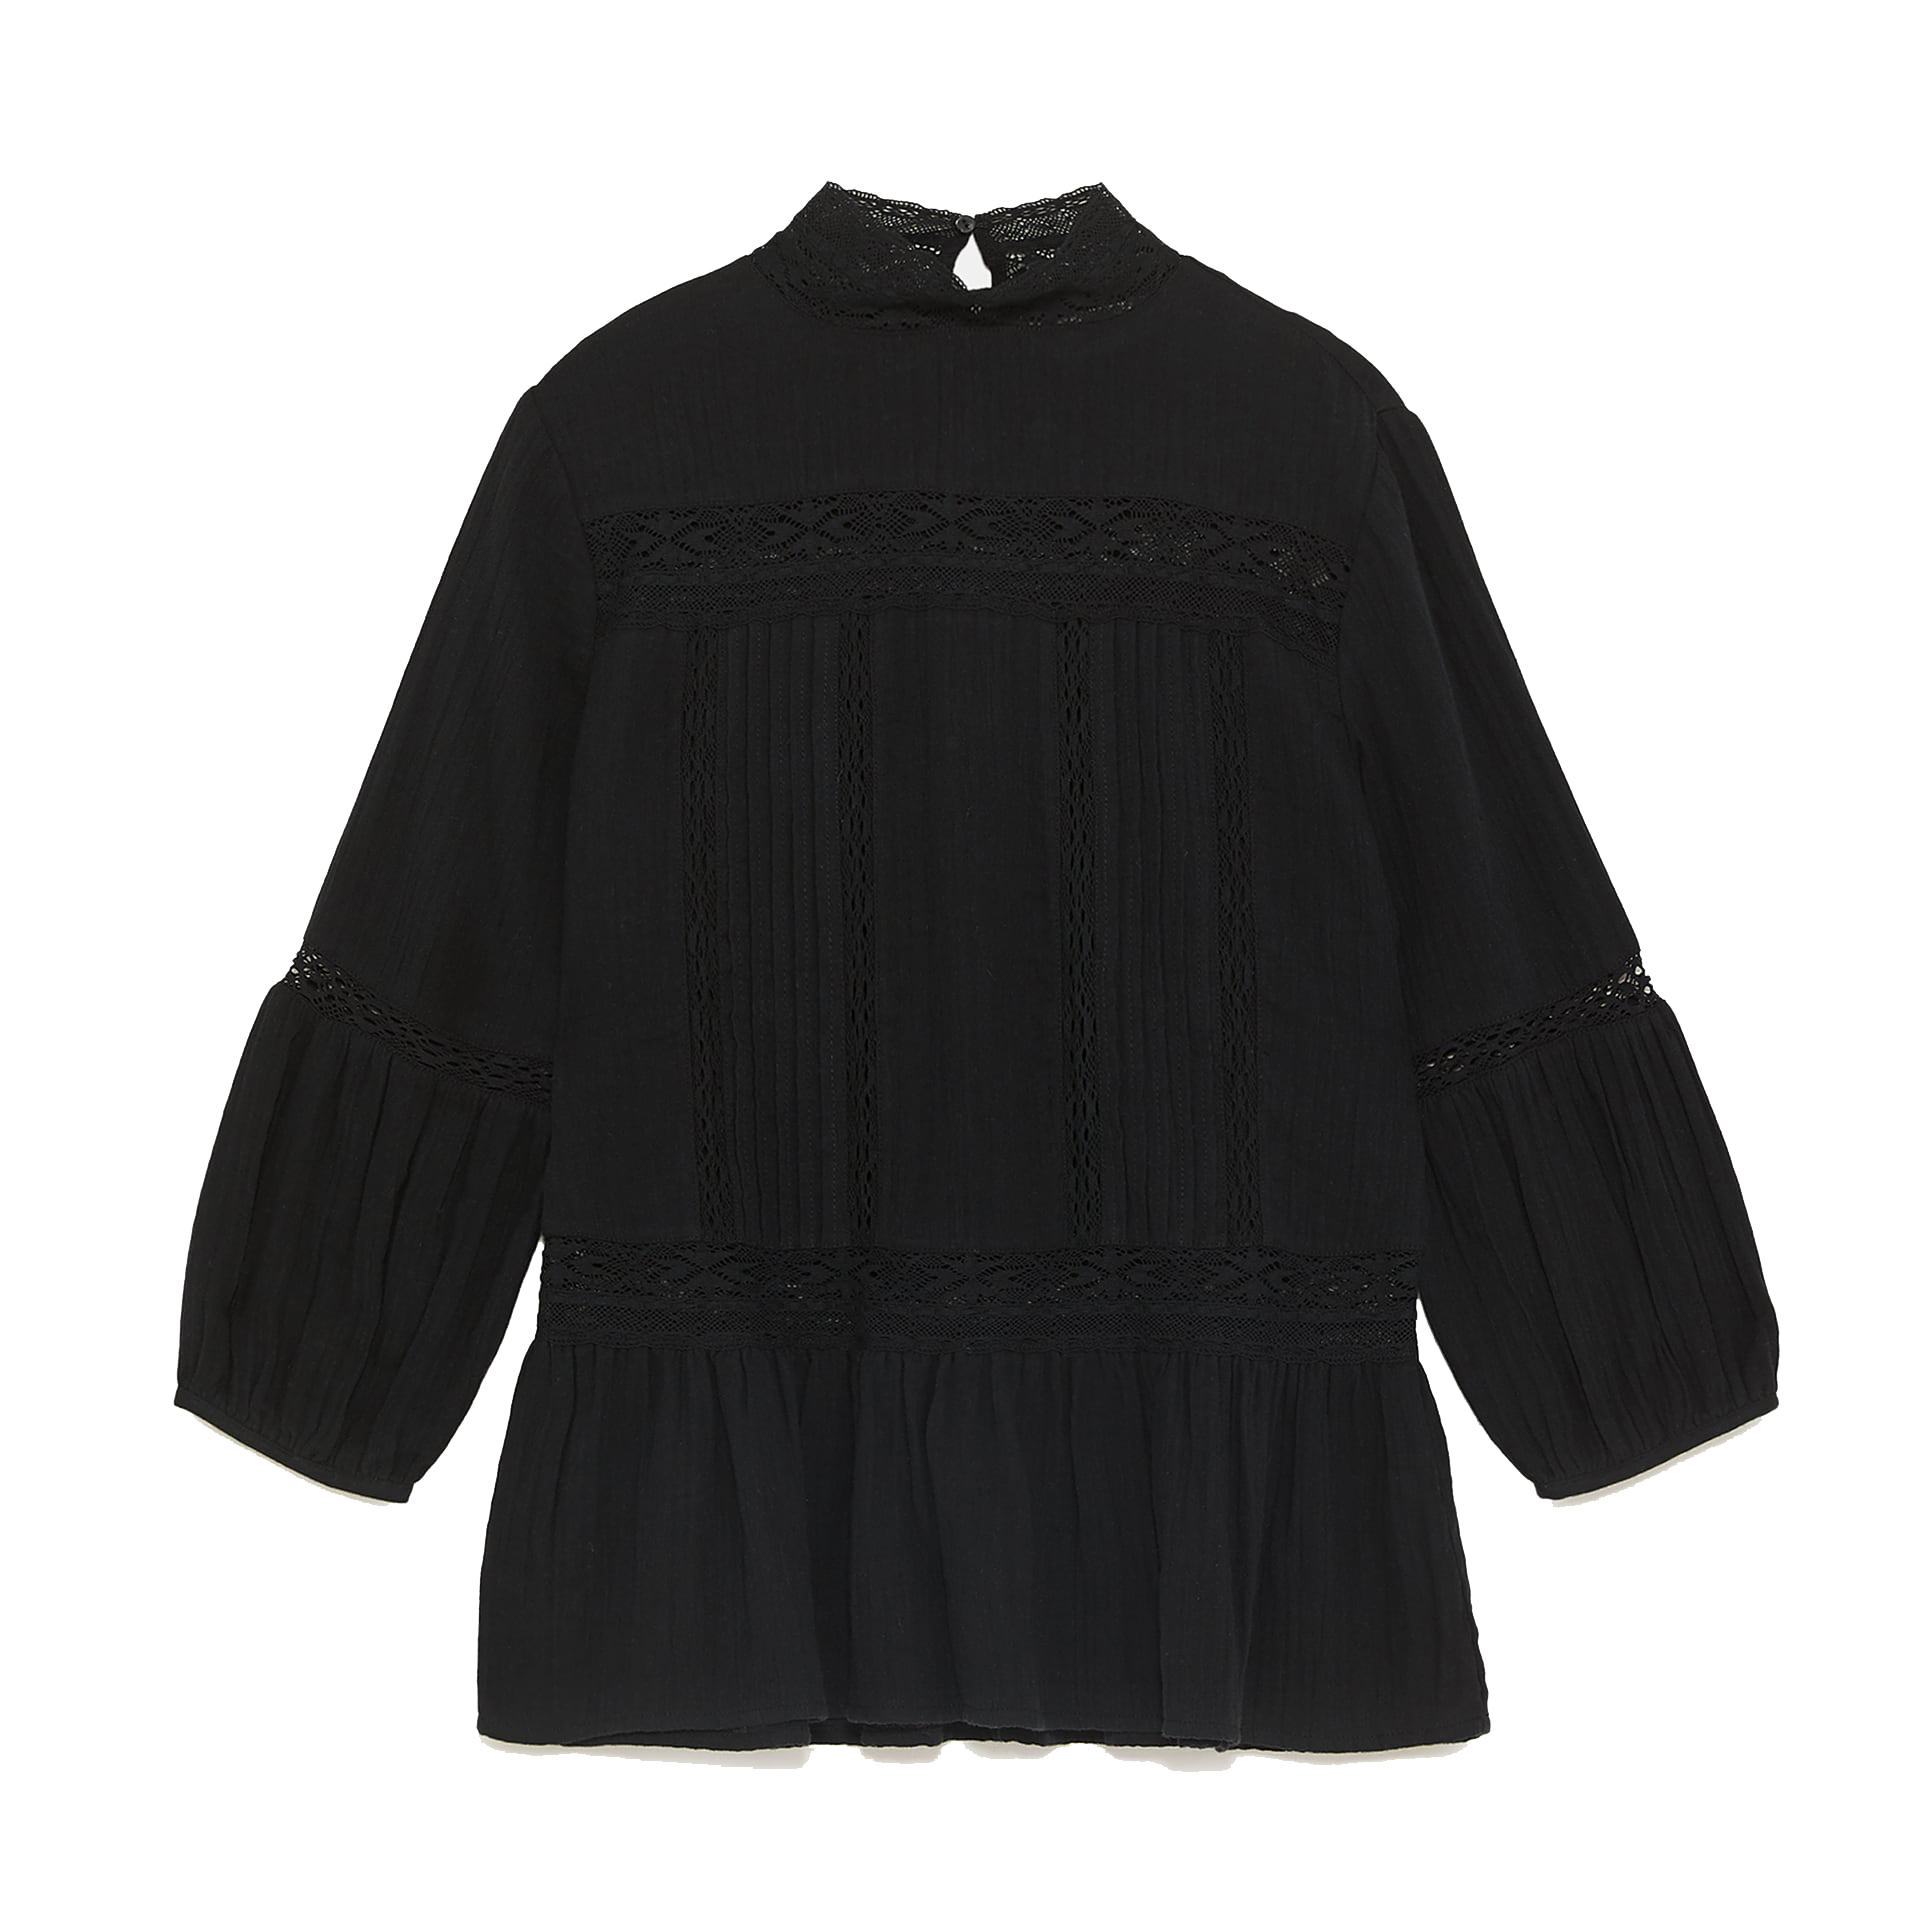 Zara Blouse With Lace Trims